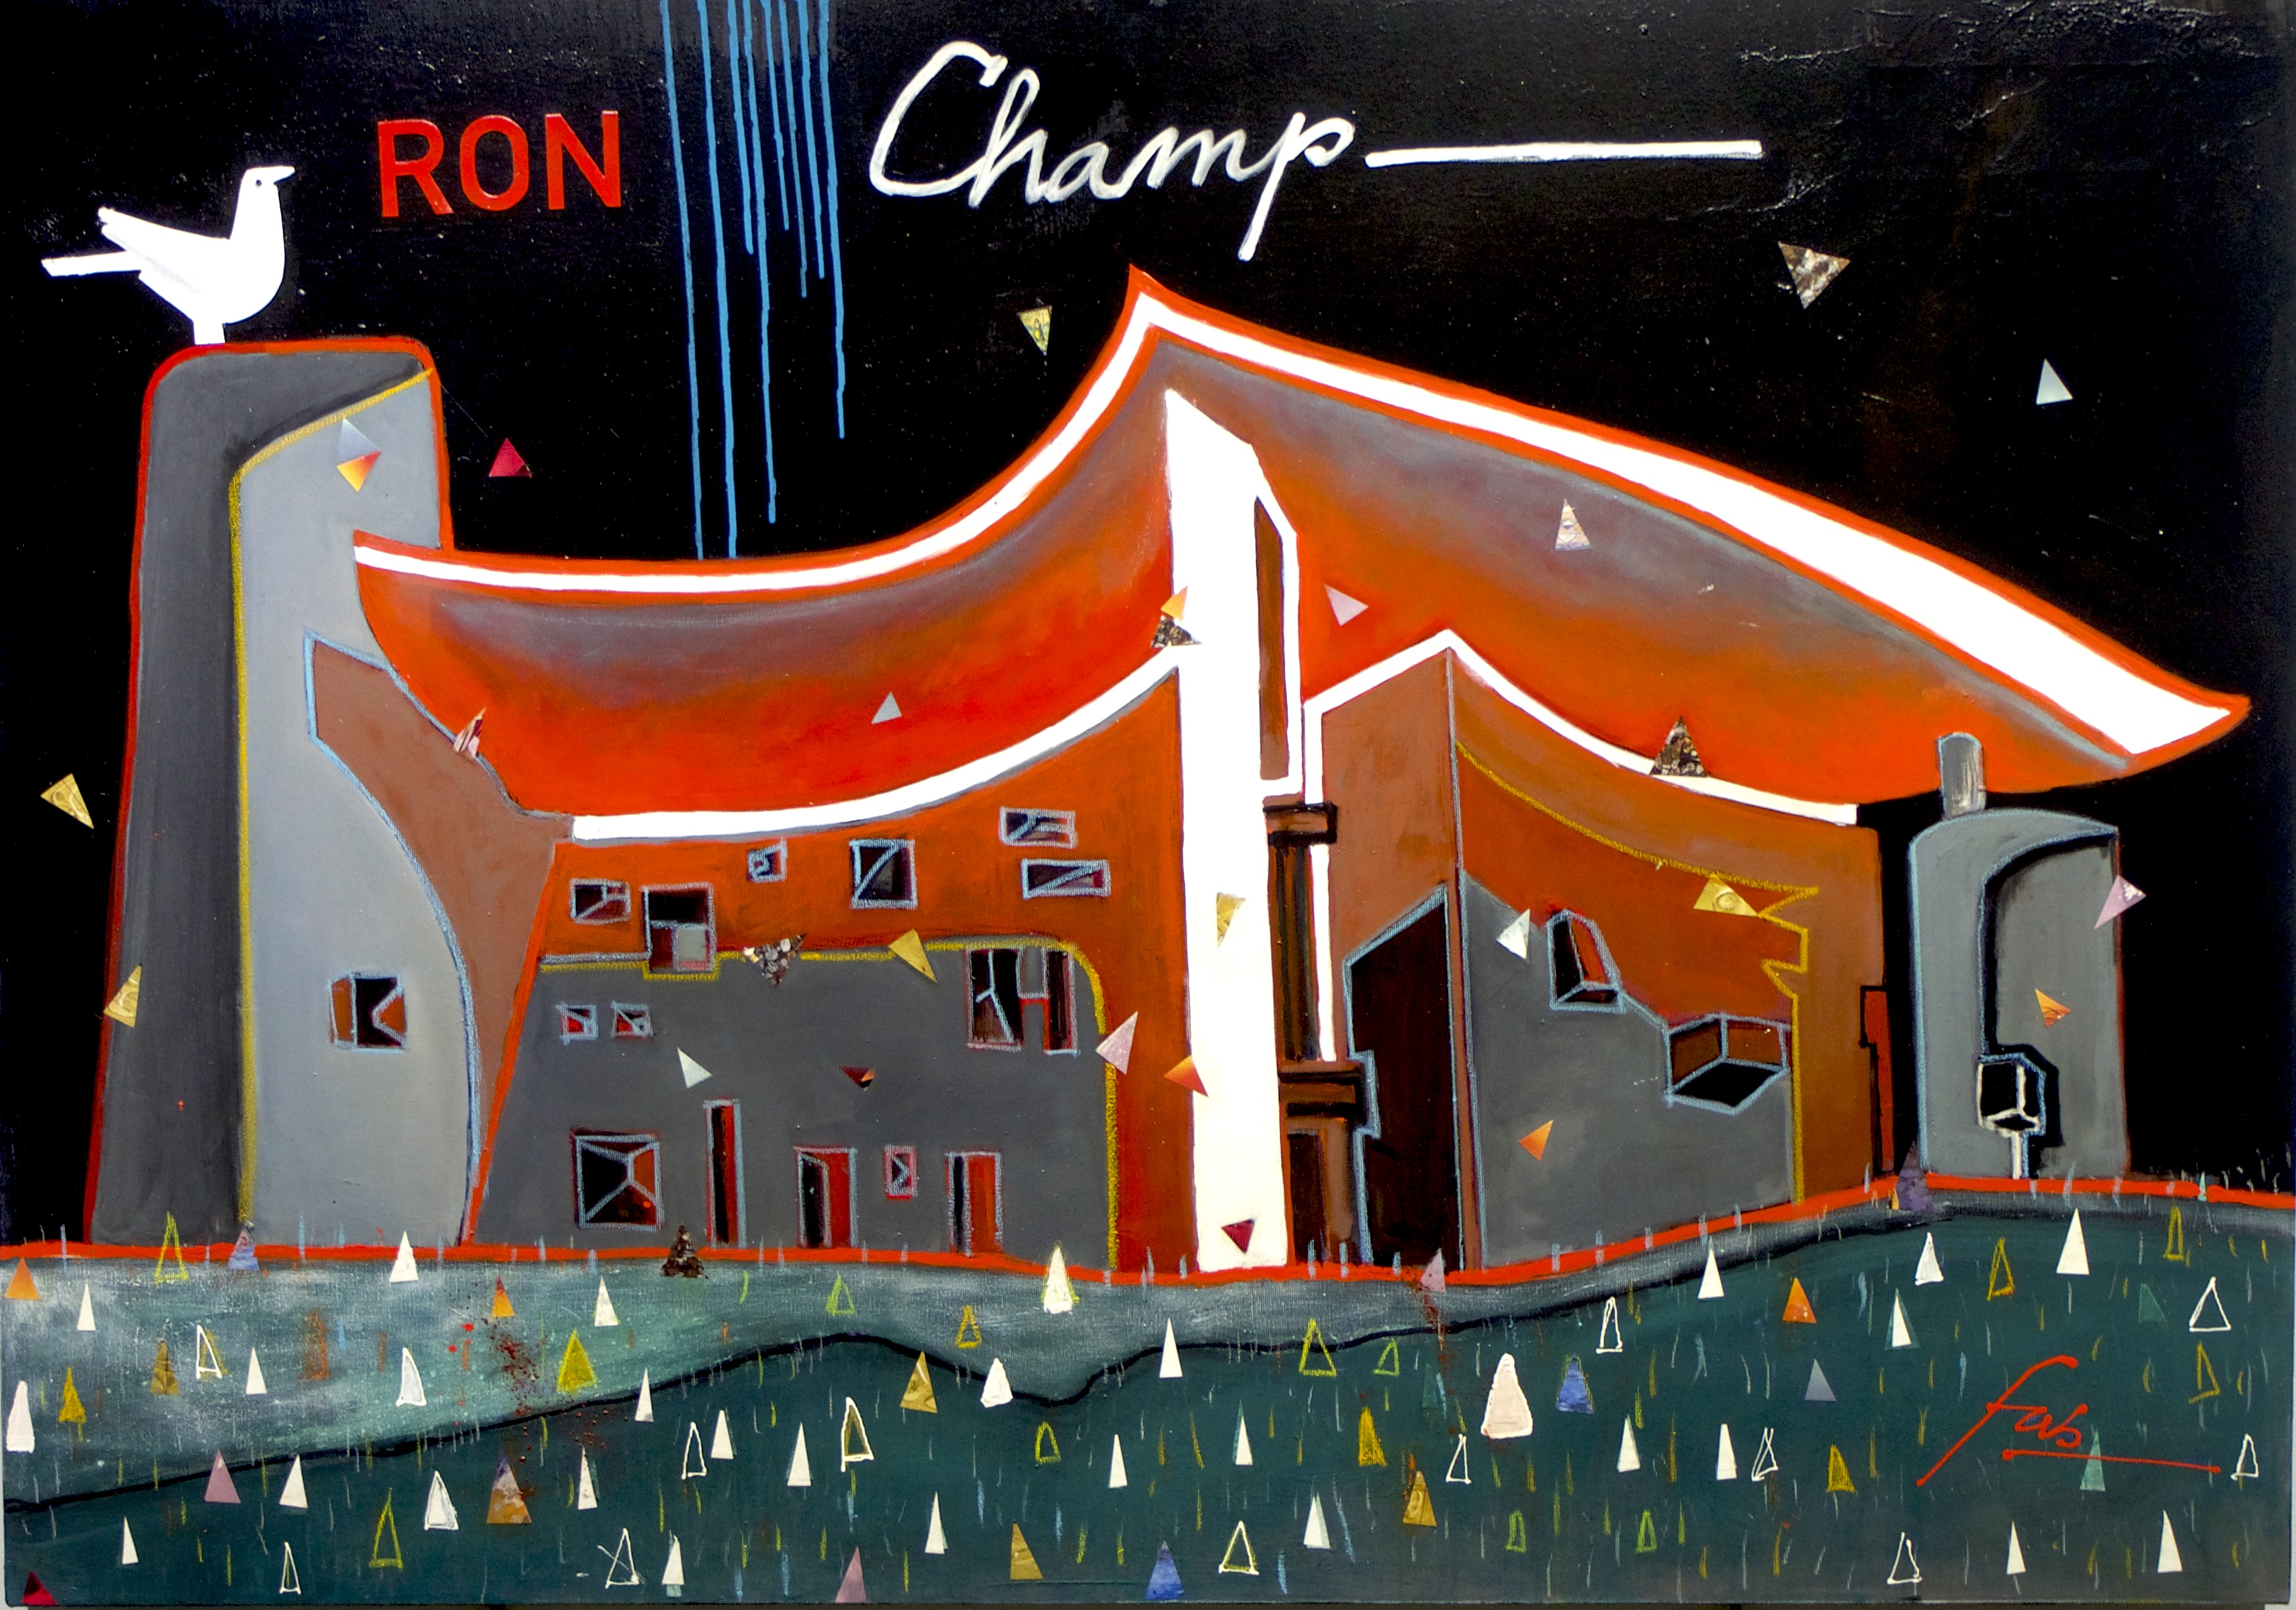 "<b>""Ronchamp""</b> <span style= ""font-size:14px"">(2019)</span> <br><p style = ""font-size:14px"">Acrylic on canvas<br>38 x 54 in.</p>"